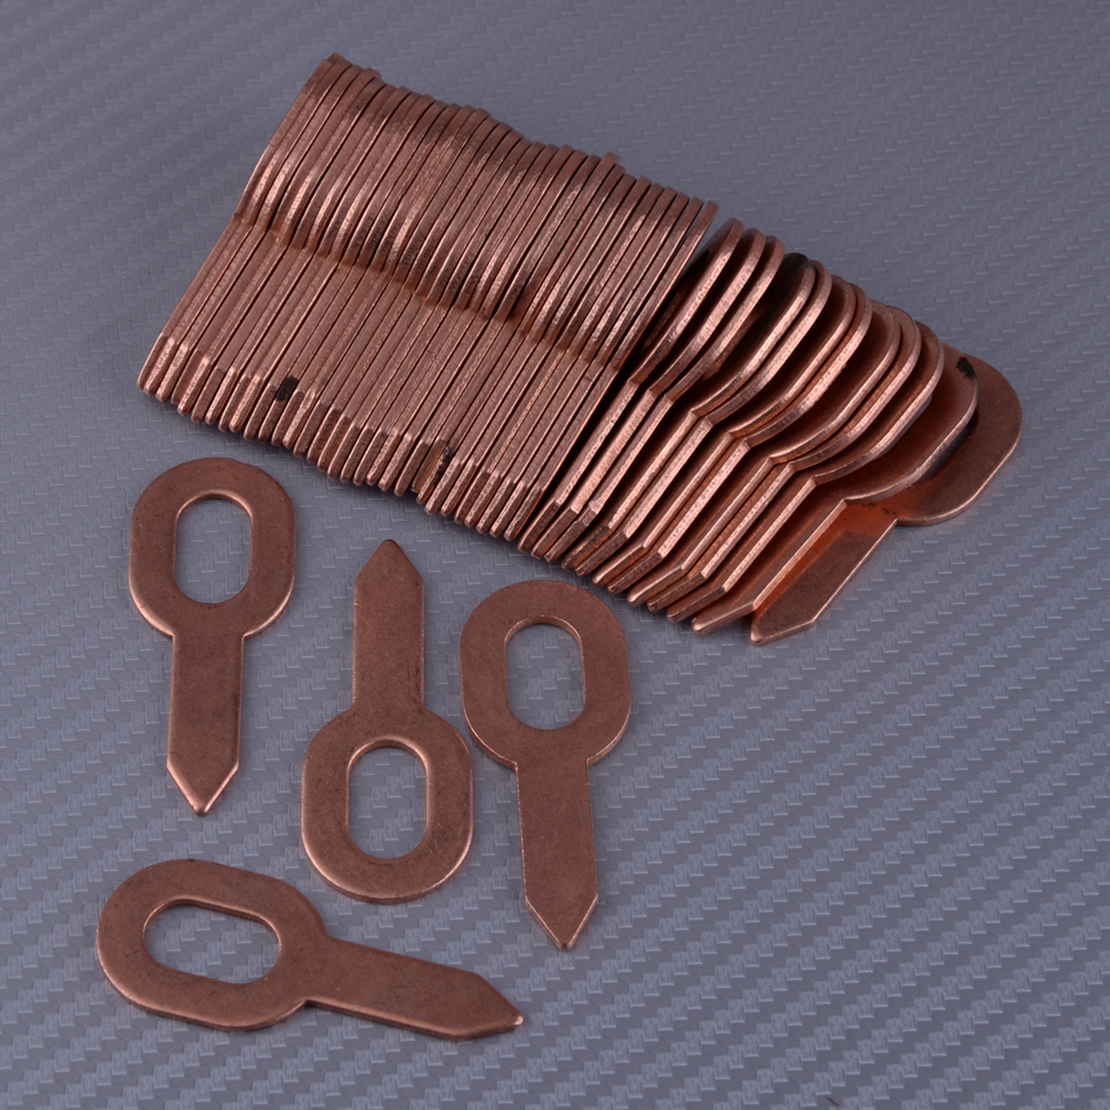 50pcs Copper Plated Dent Puller Rings For Spot Welding Soldering Car Body Panel Washer 55.5mm Removal Repair Tool